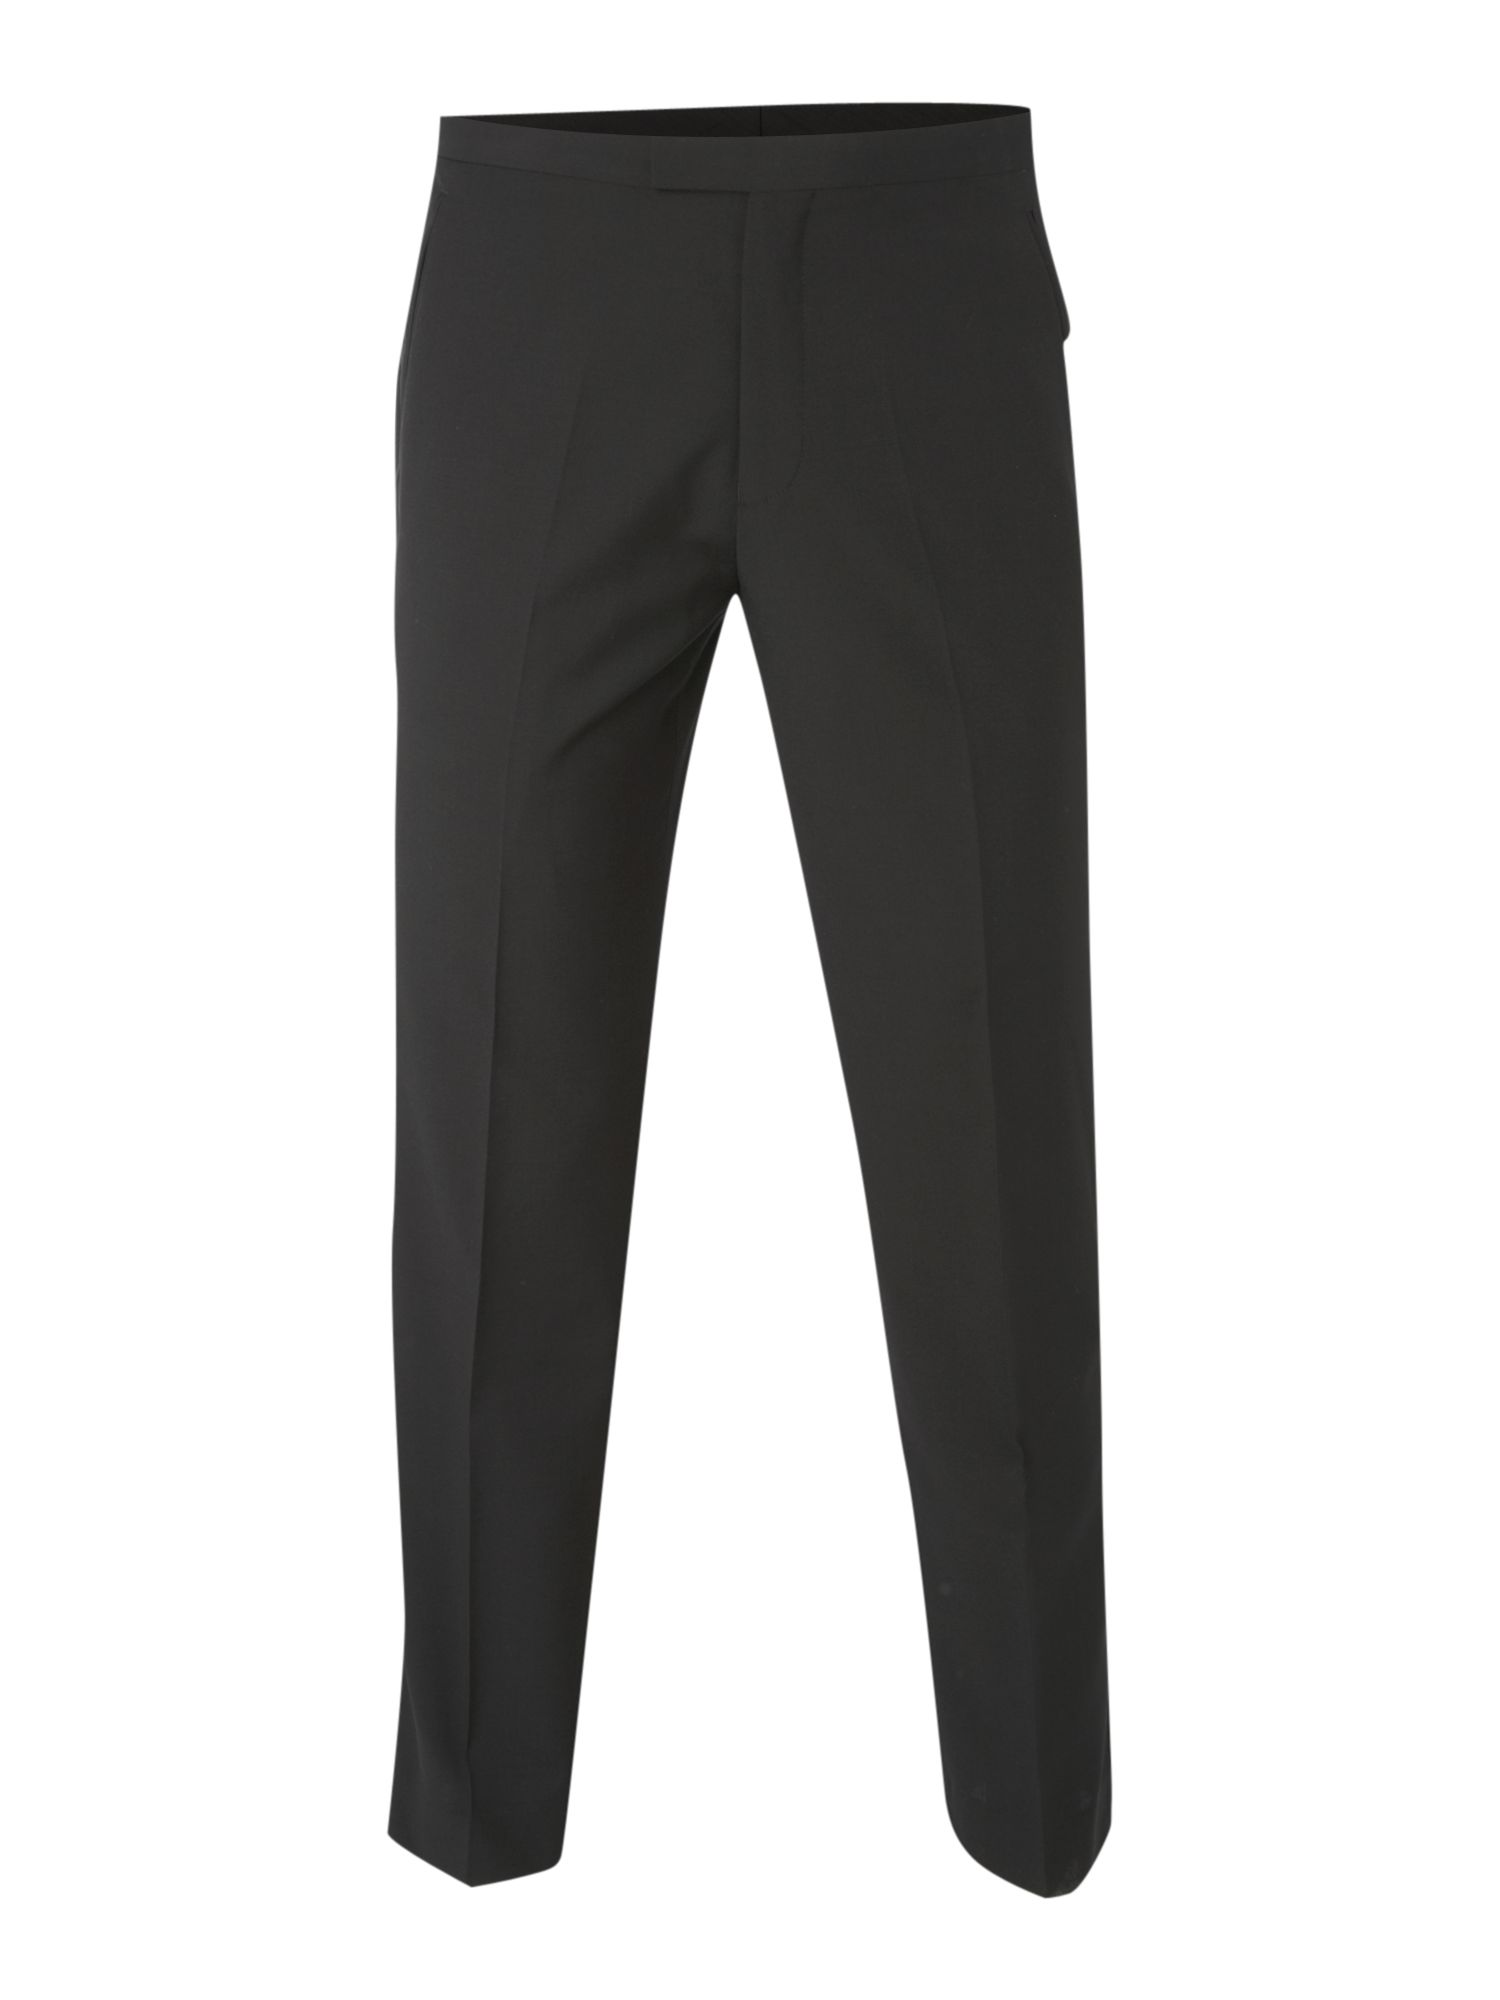 Harewood dress trousers